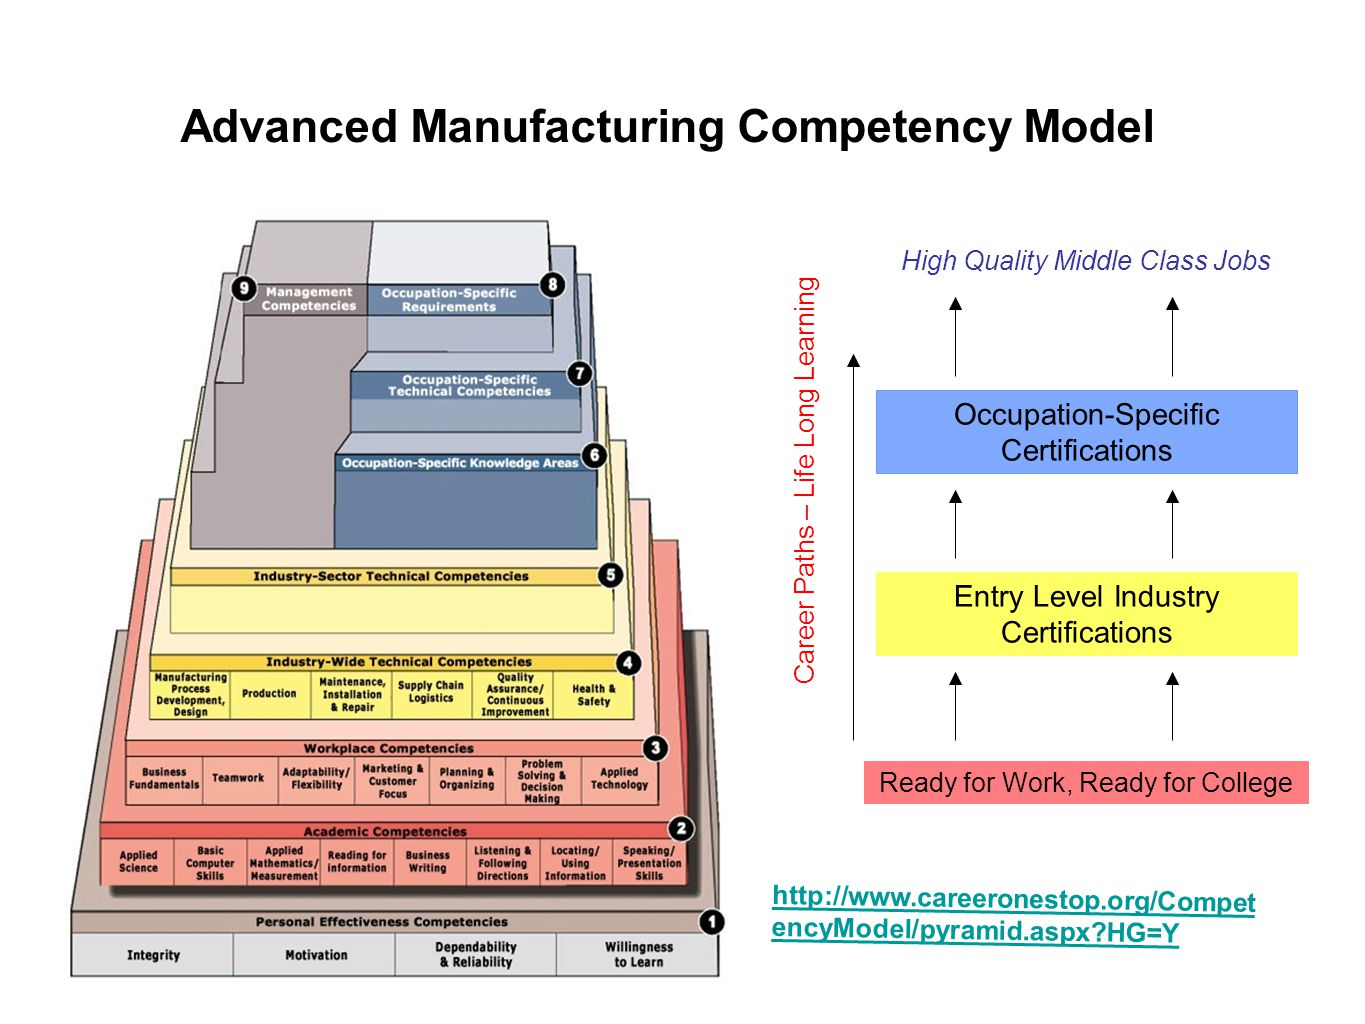 Advanced Manufacturing Competency Model Ready for Work, Ready for College Entry Level Industry Certifications Occupation-Specific Certifications Caree